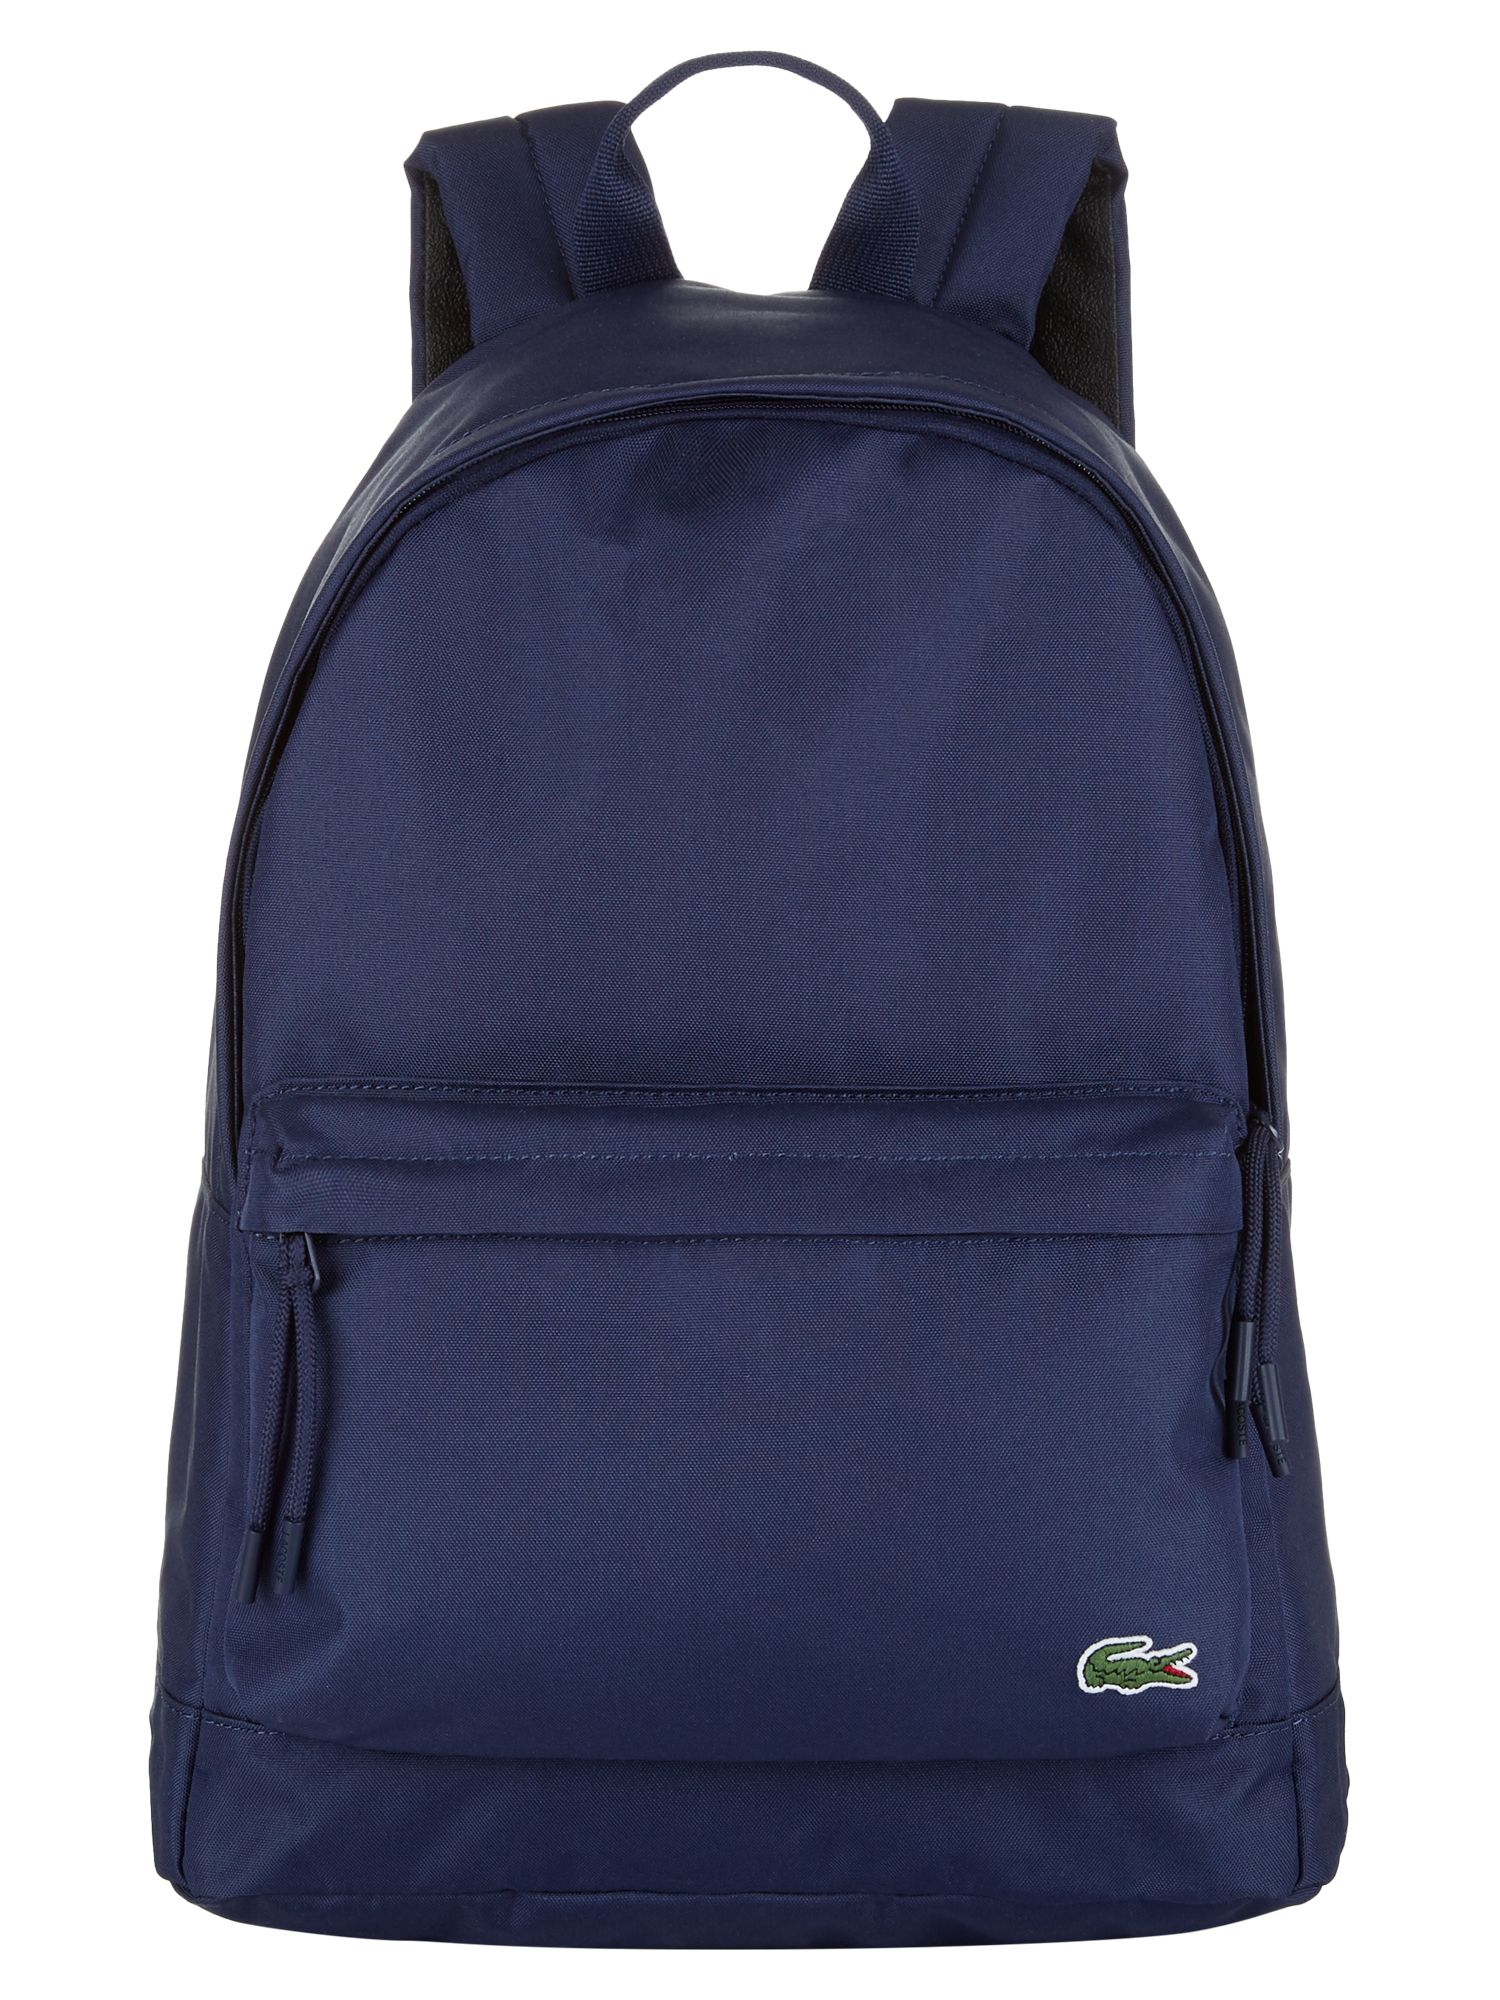 Lacoste Neocroc Backpack In Canvas, Vintage Blue